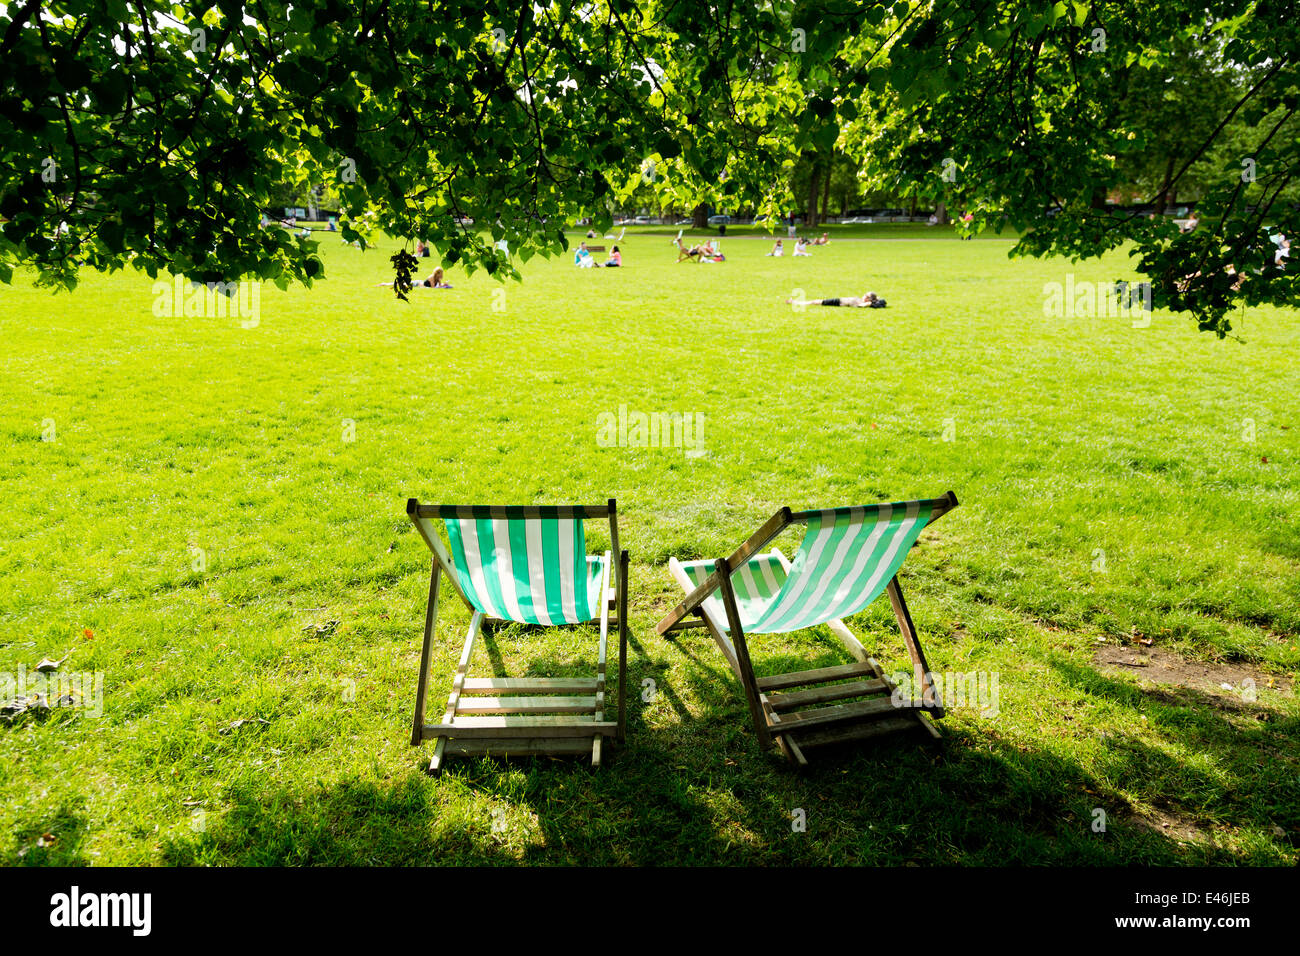 Deckchairs at London St. James's Park on a sunny day, England - Stock Image